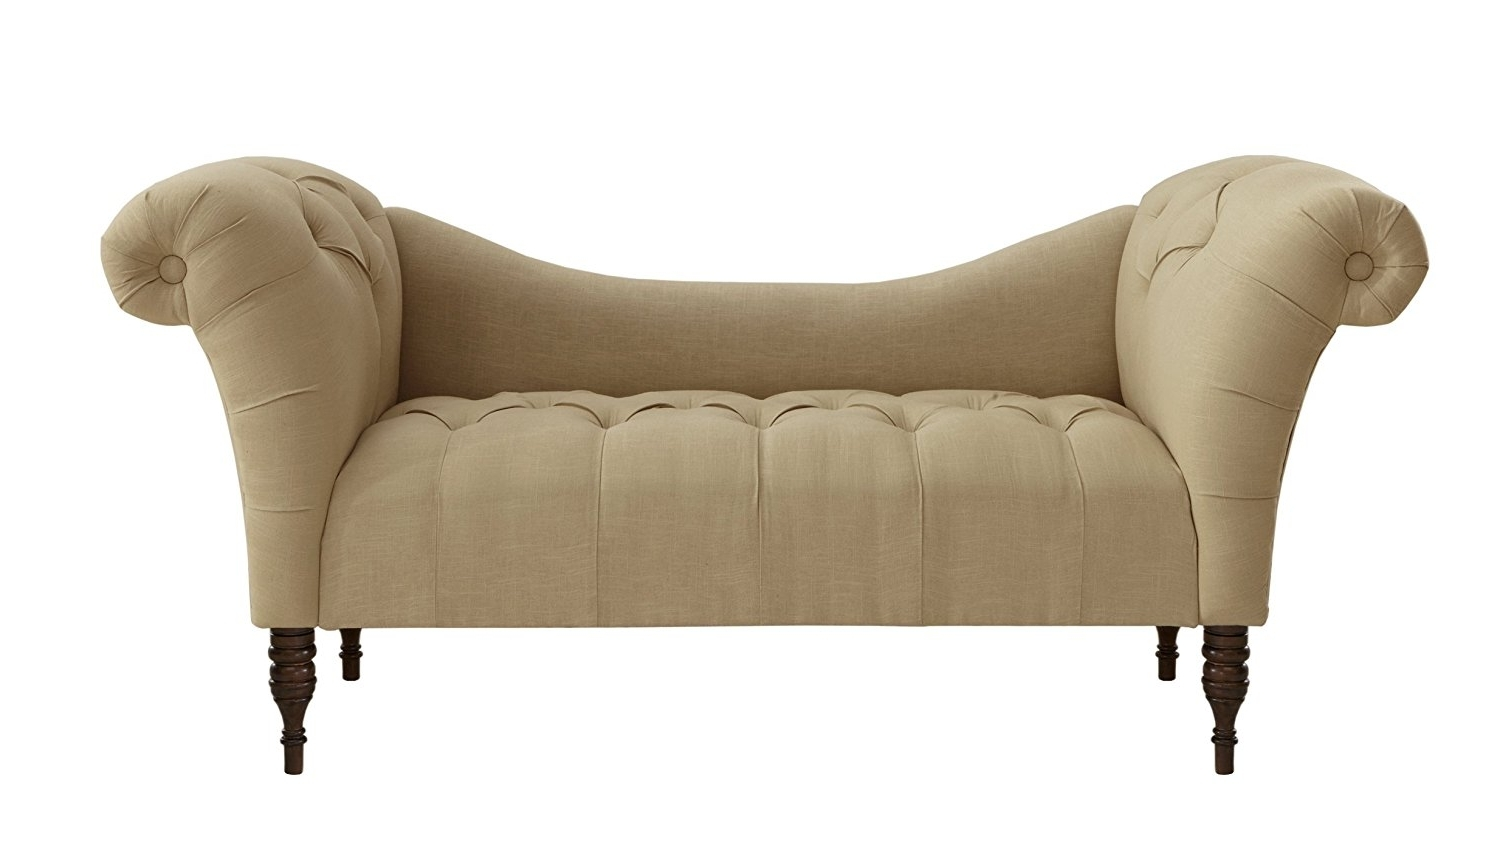 Chaise Lounge Benchs In 2017 Amazon: Skyline Furniture Tufted Chaise Lounge In Linen (View 2 of 15)